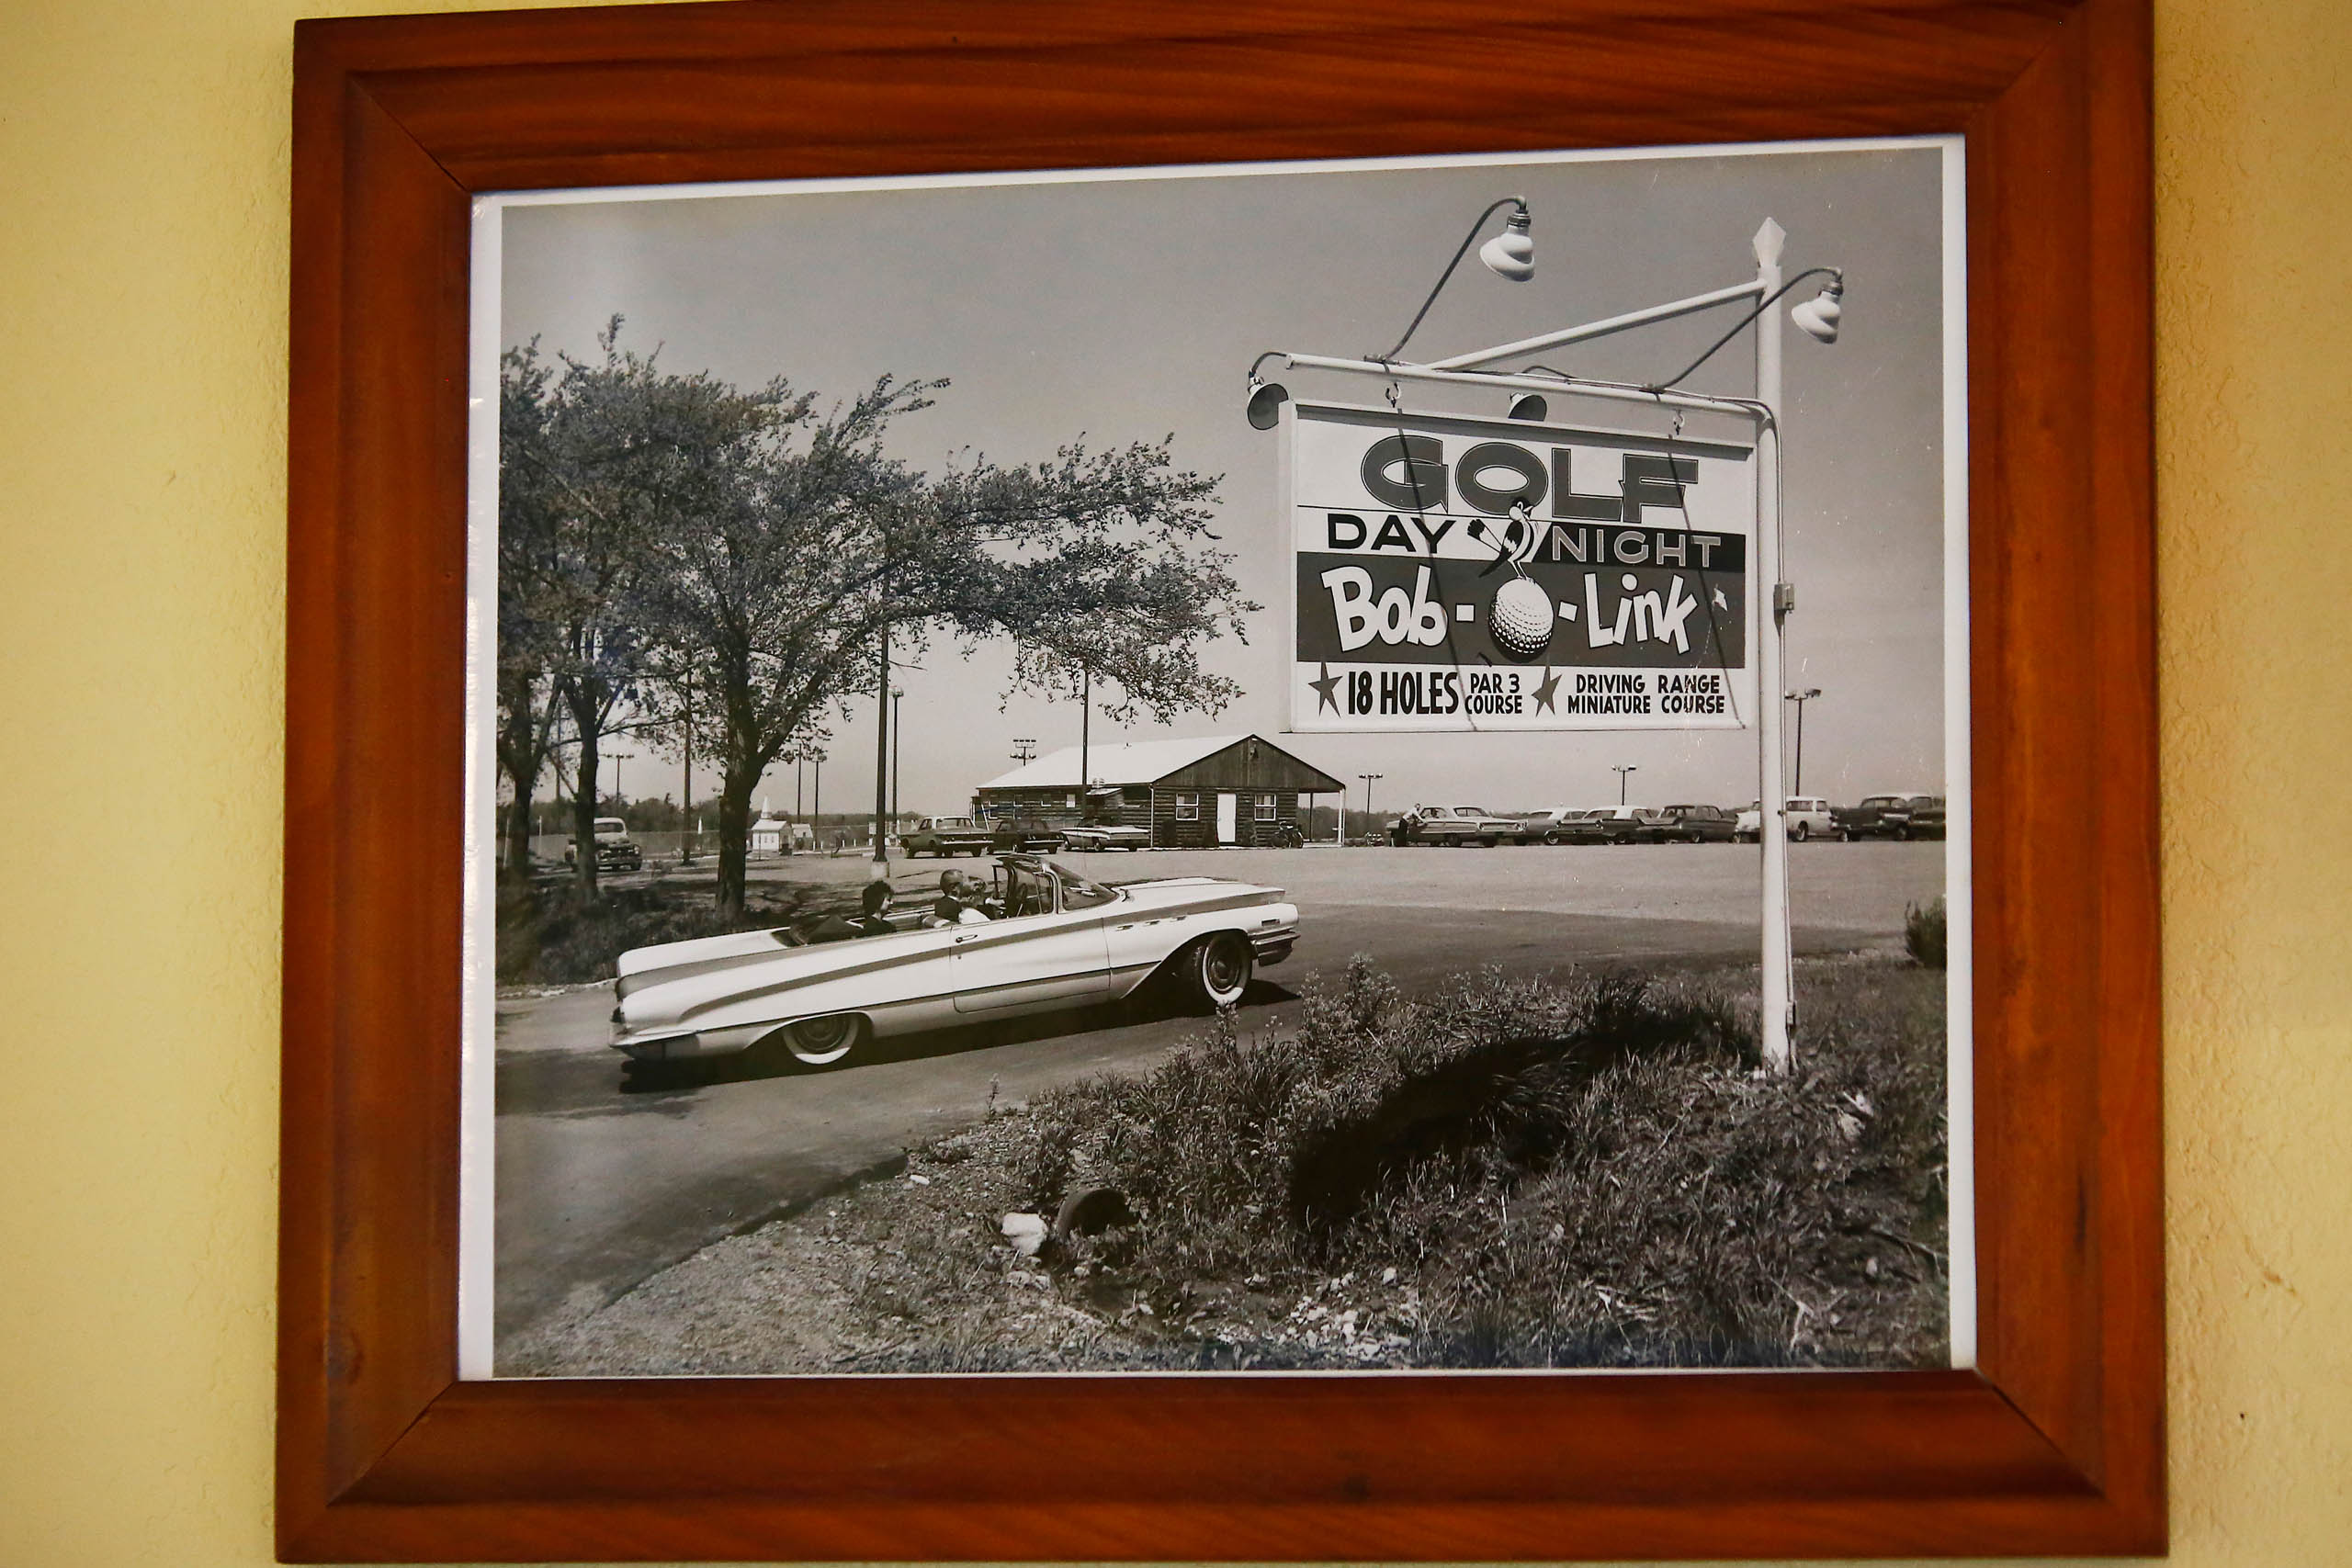 An old photo of the Bob-O-Link golf course hangs inside the clubhouse on Friday September 20, 2019 in Orchard Park, New York. (Photo by Jared Wickerham/Golfers Journal)